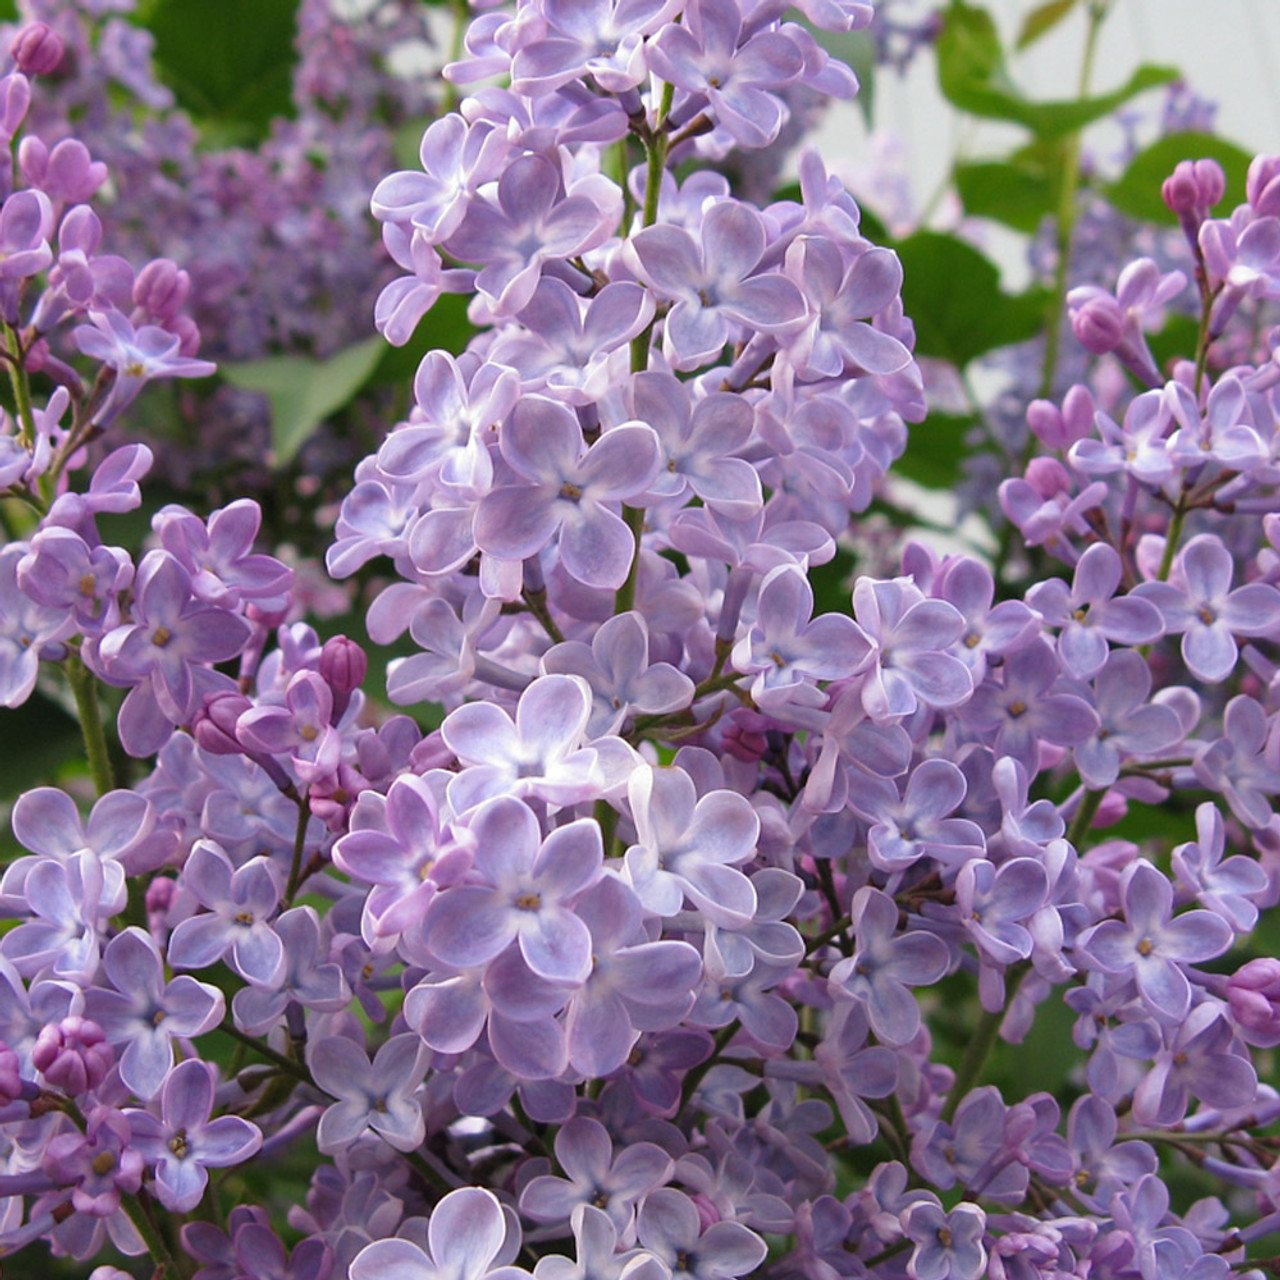 Lilac Flowers Fragrance Oil For Soap And Candle Making New York Scent